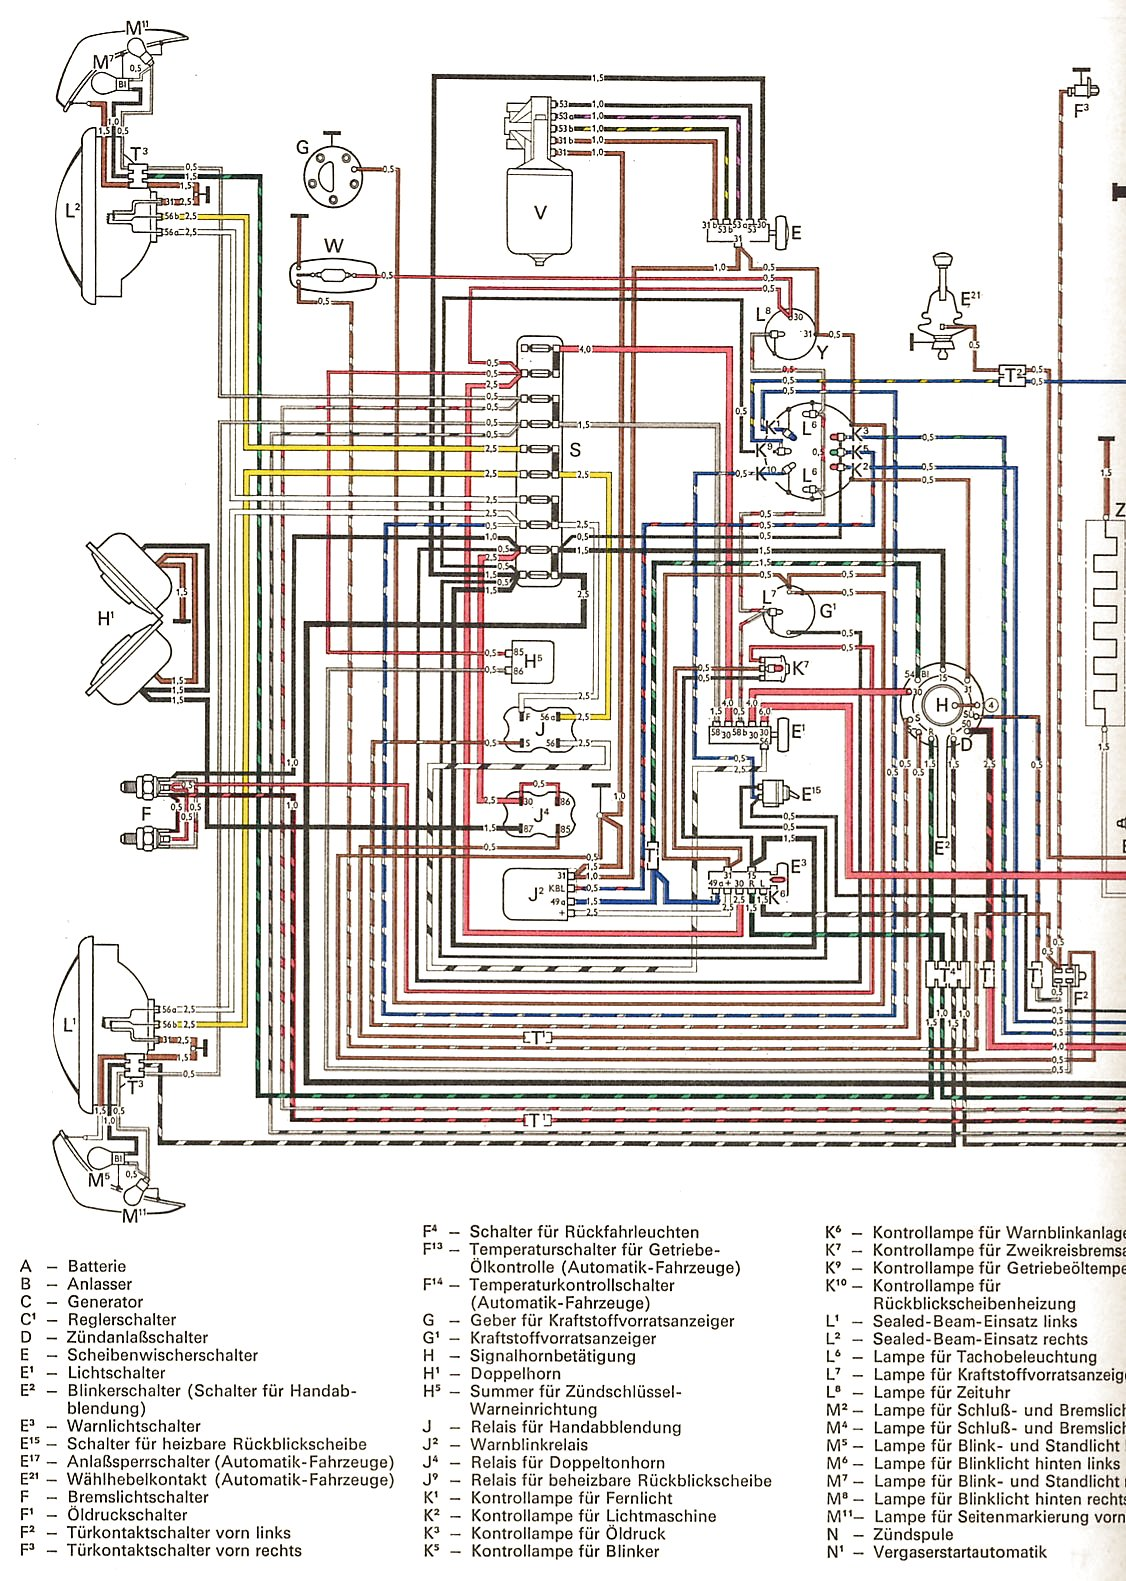 Ghia Usa From August on 1967 Vw Beetle Wiring Diagram